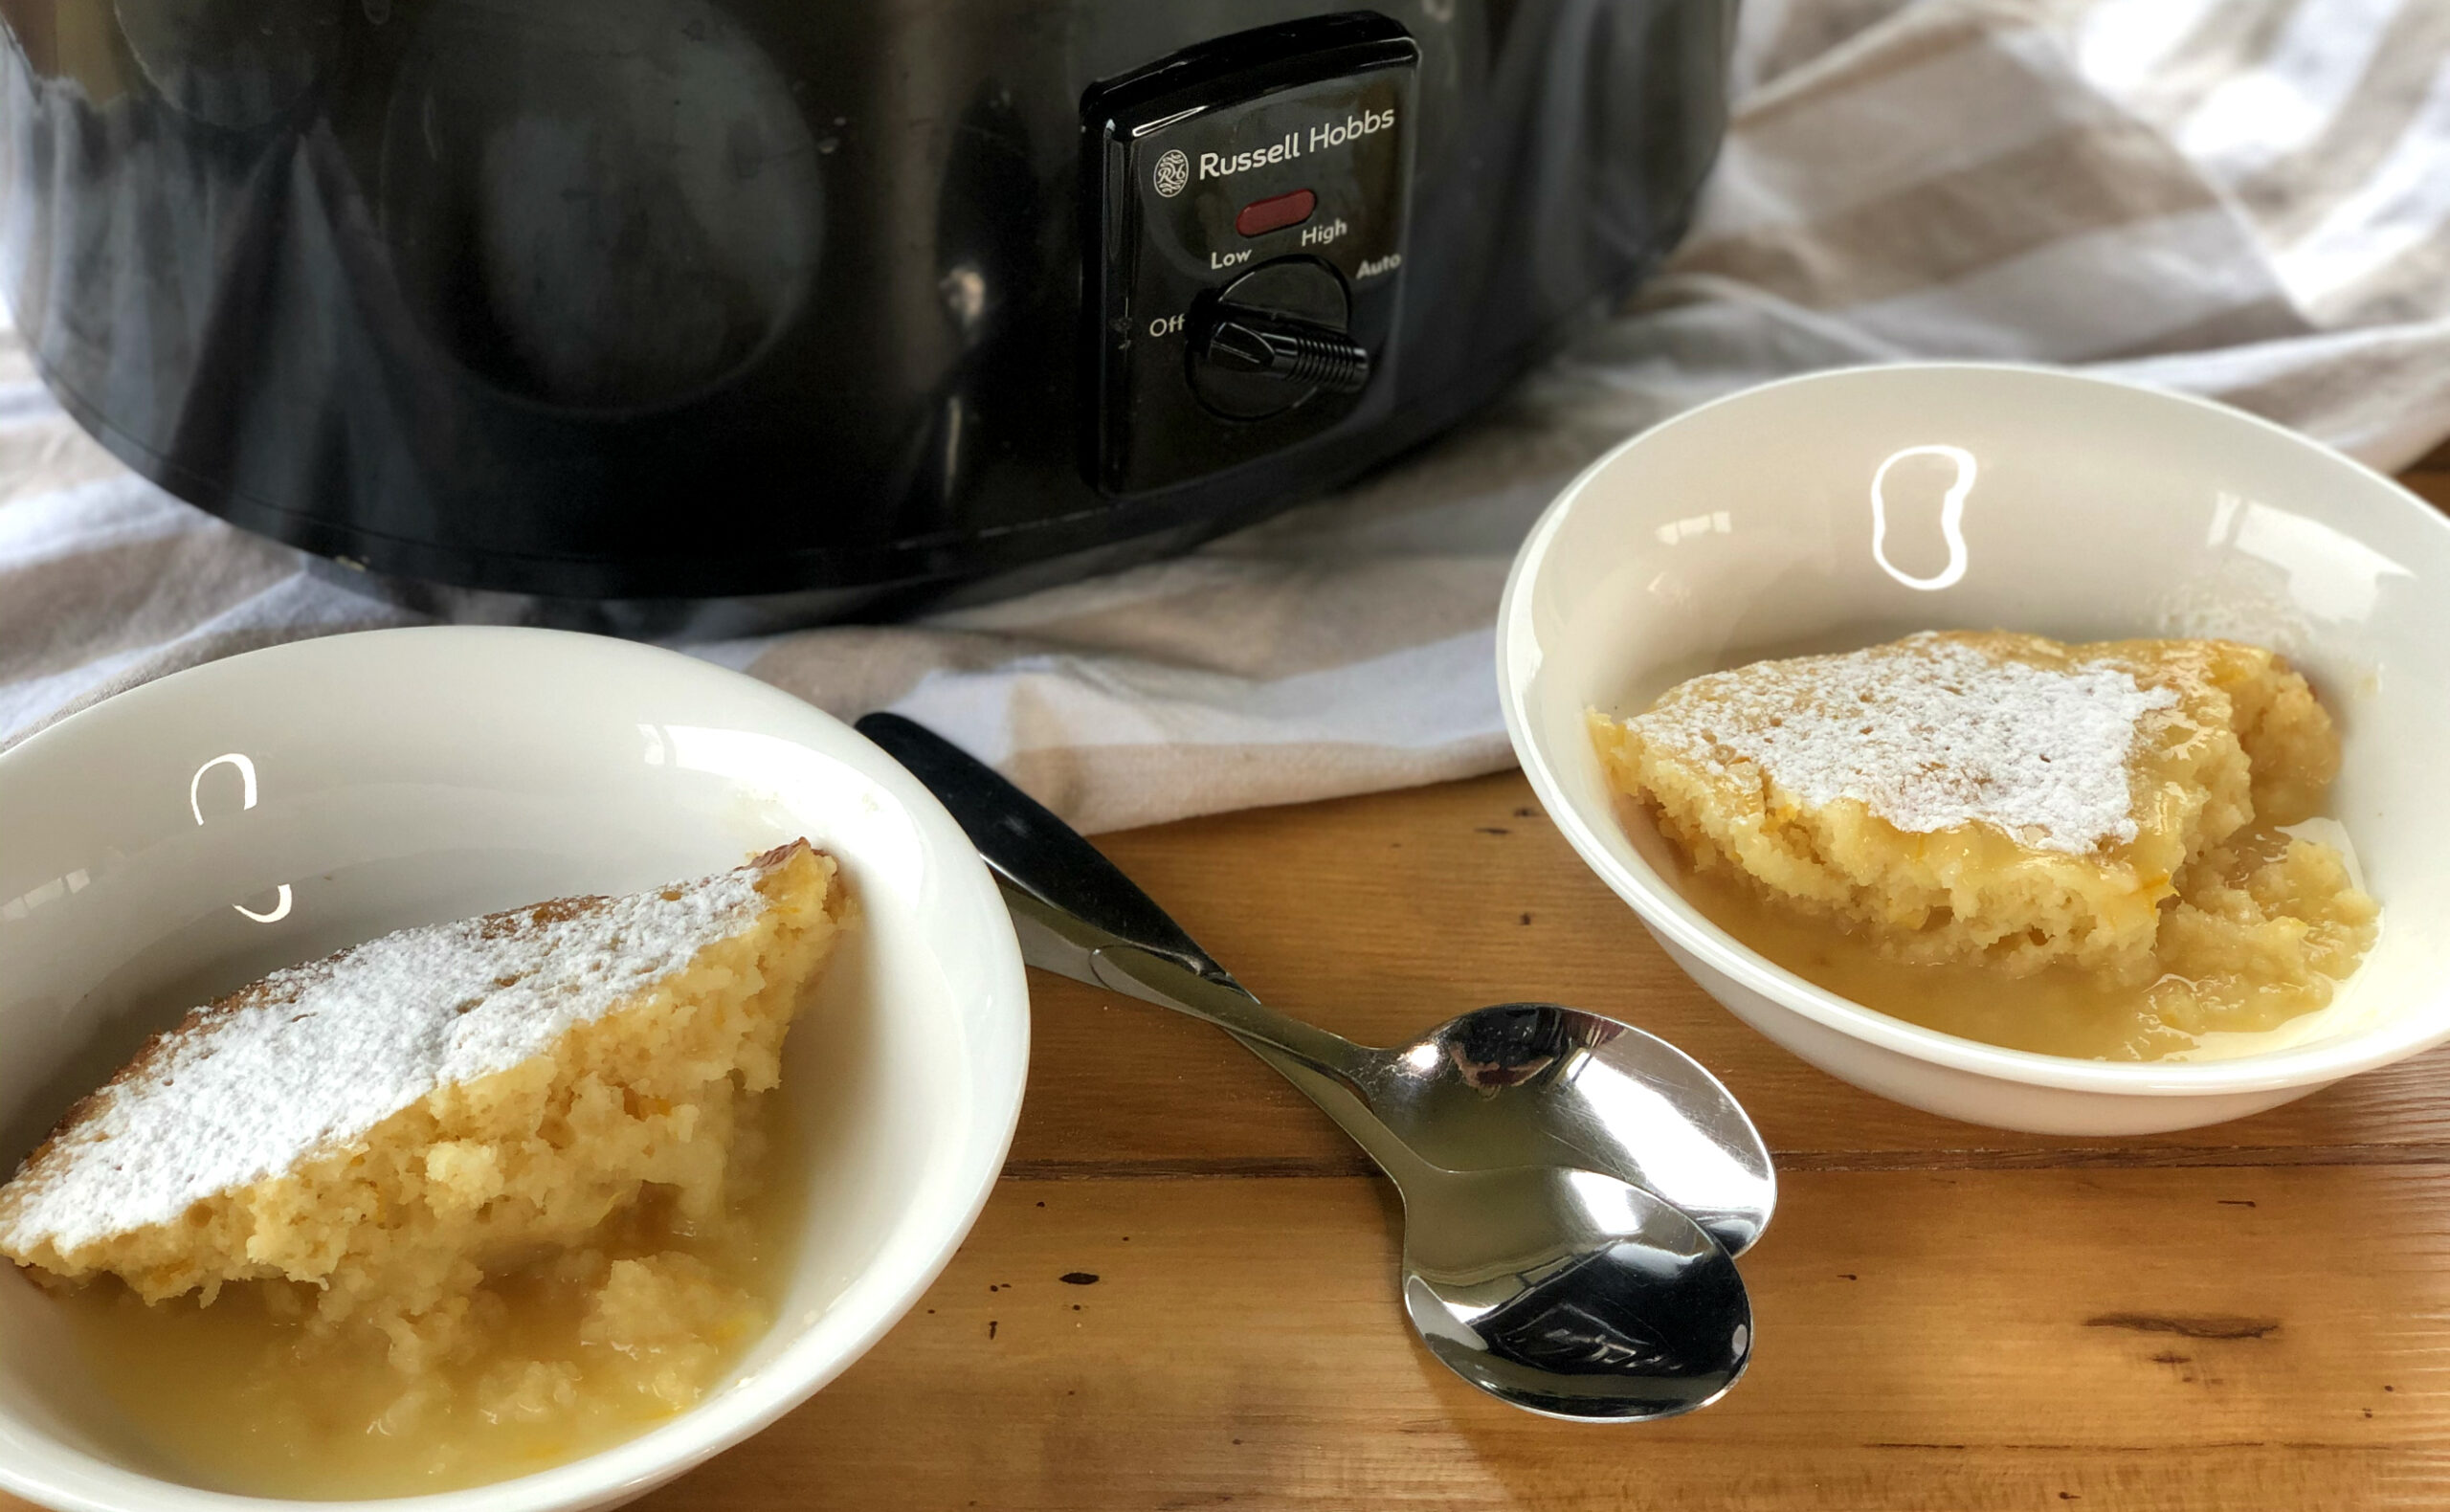 Russell Hobbs Slow Cooker with two bowls of lemon pudding